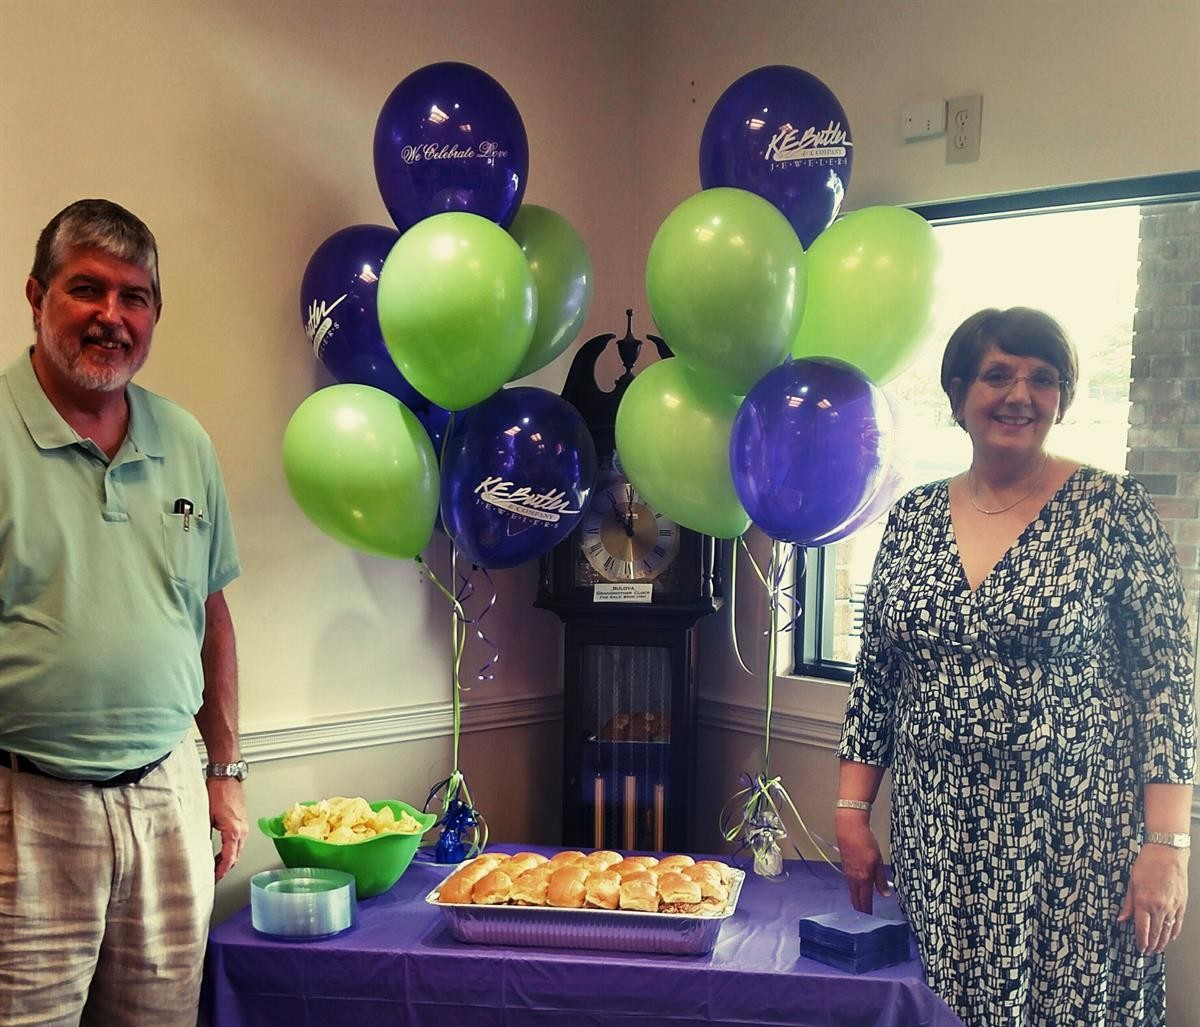 K E Butler celebrates 60th Anniversary